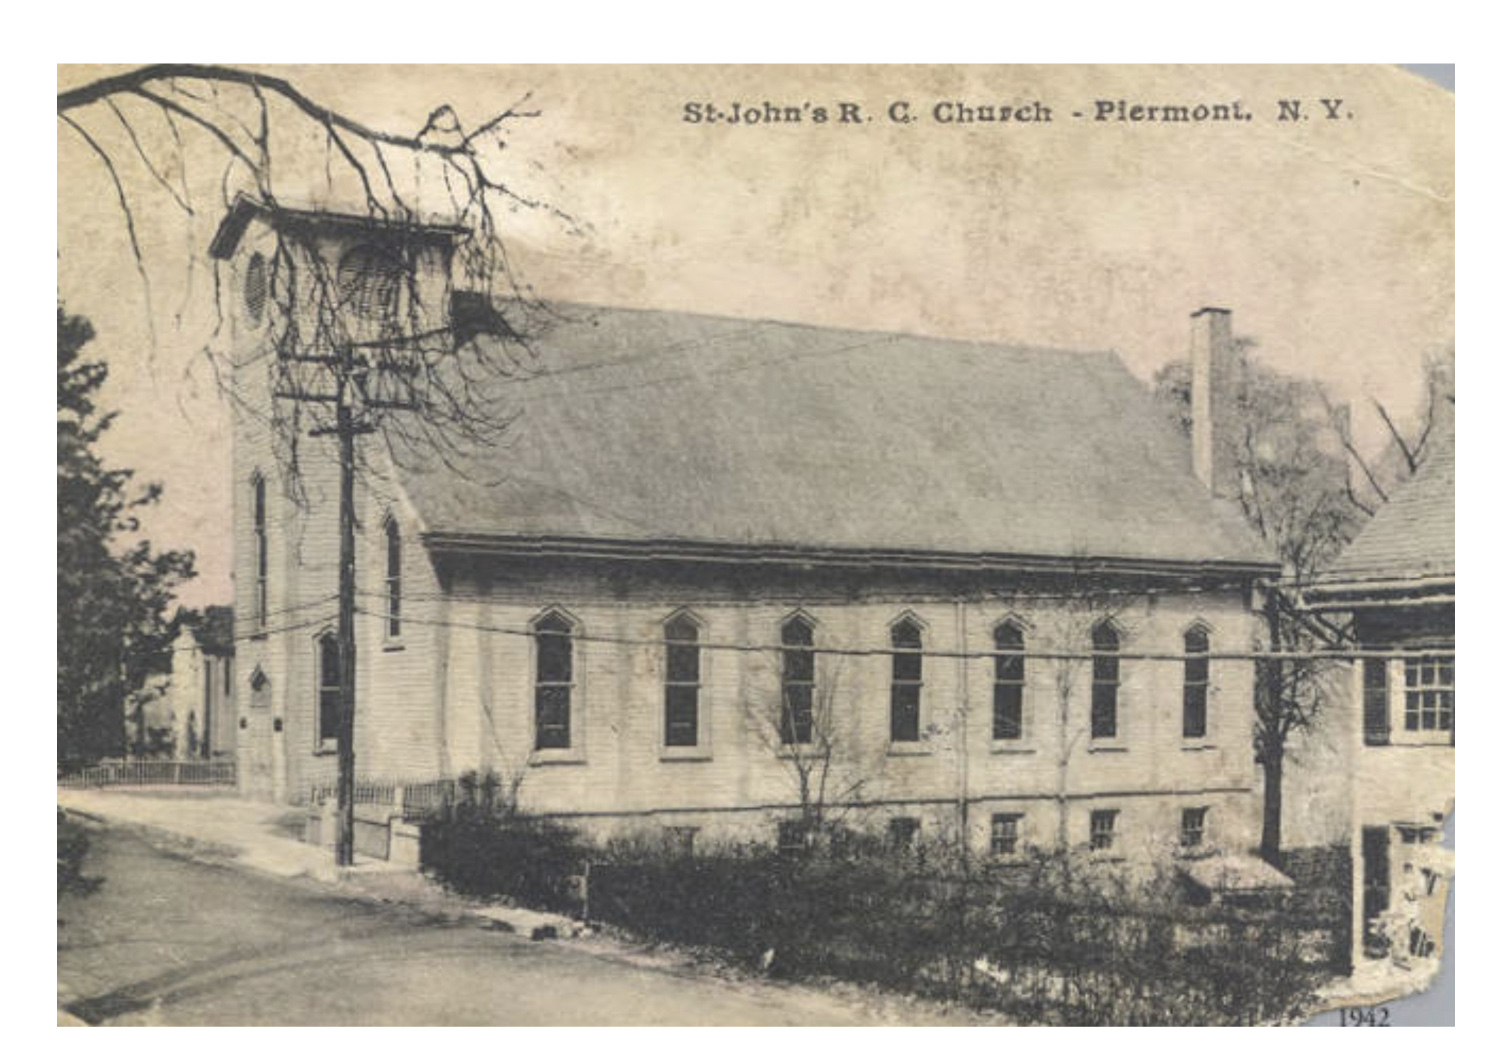 A historic photo of St. John's R.C. Church, Piermont, New York, which featured large in the Nelligan family story.